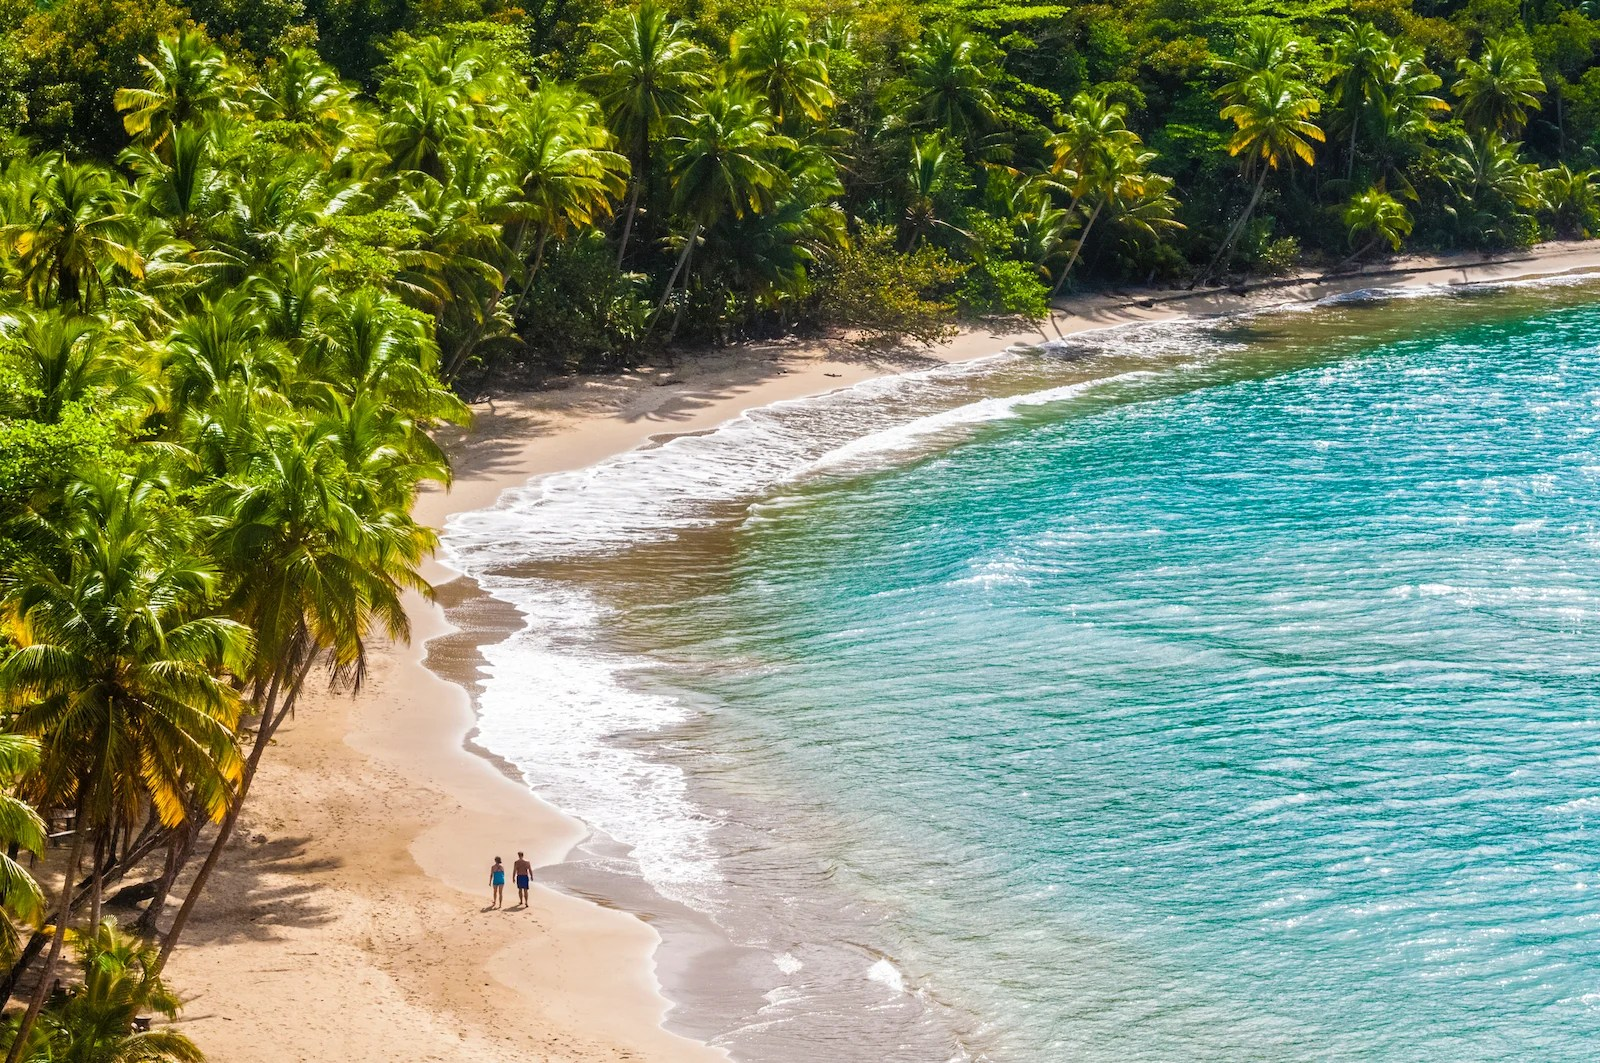 Now is the perfect time for a trip to Dominica